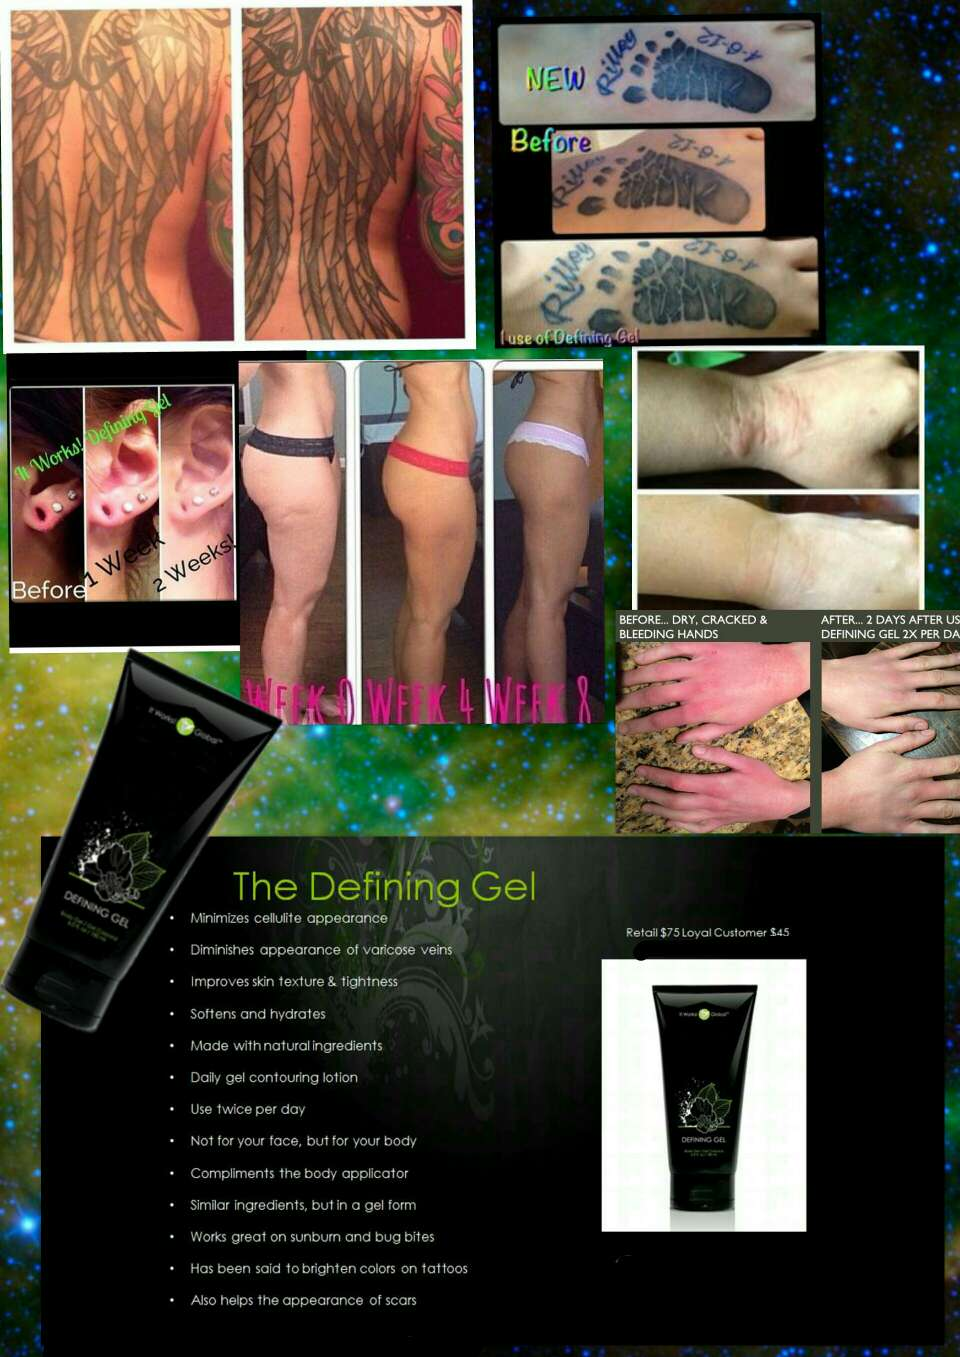 our Defining Gel is one of our most popular products it helps with so many things...  ◈ eczema ◈ veins ◈ soften ◈ hydrates ◈ cellulite ◈  brighten up your tattoos  And so many more